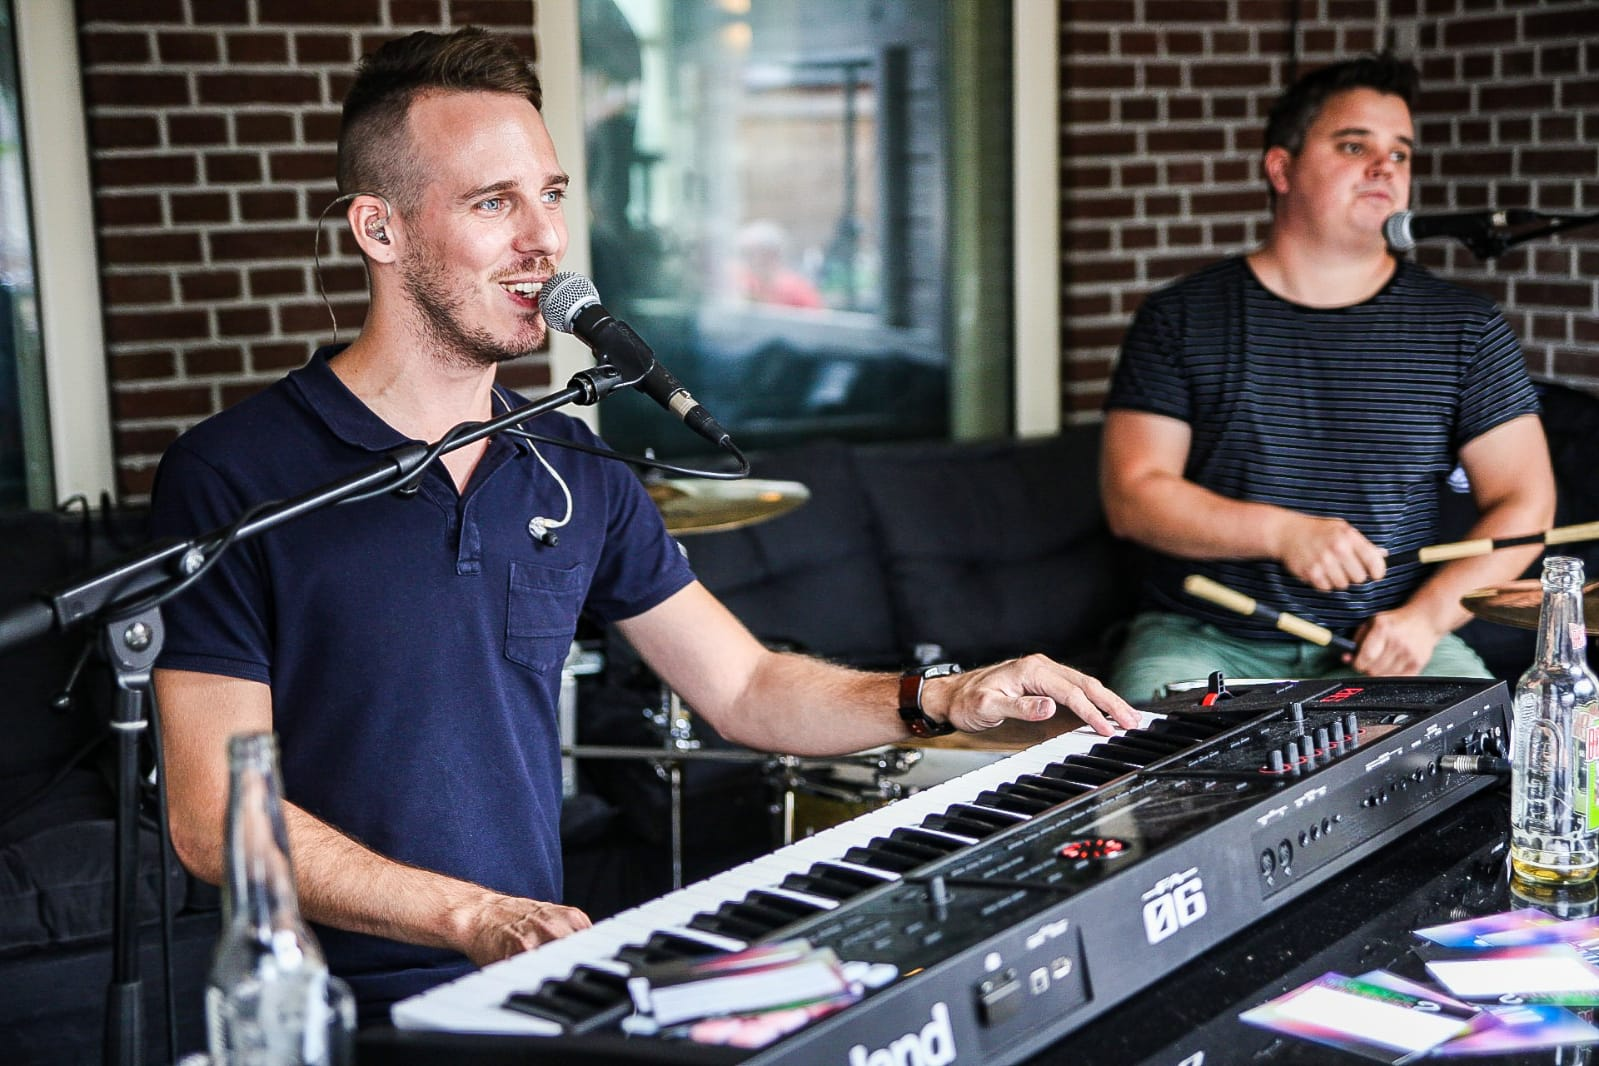 The Pianoman & Drums